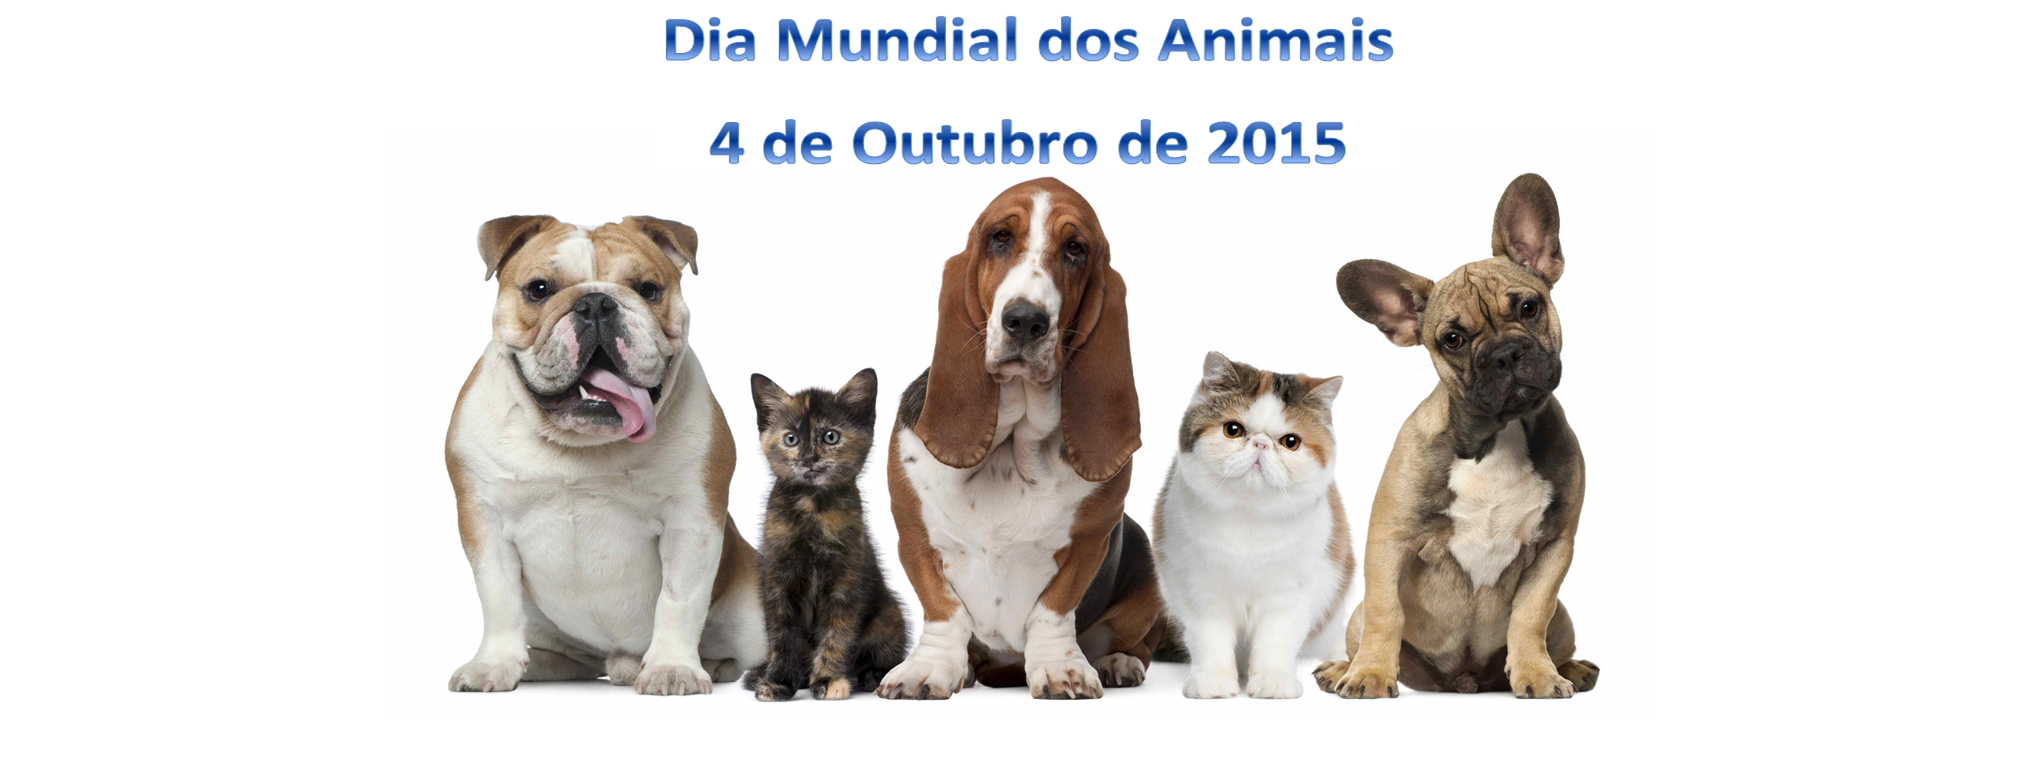 Dia do Animal.png